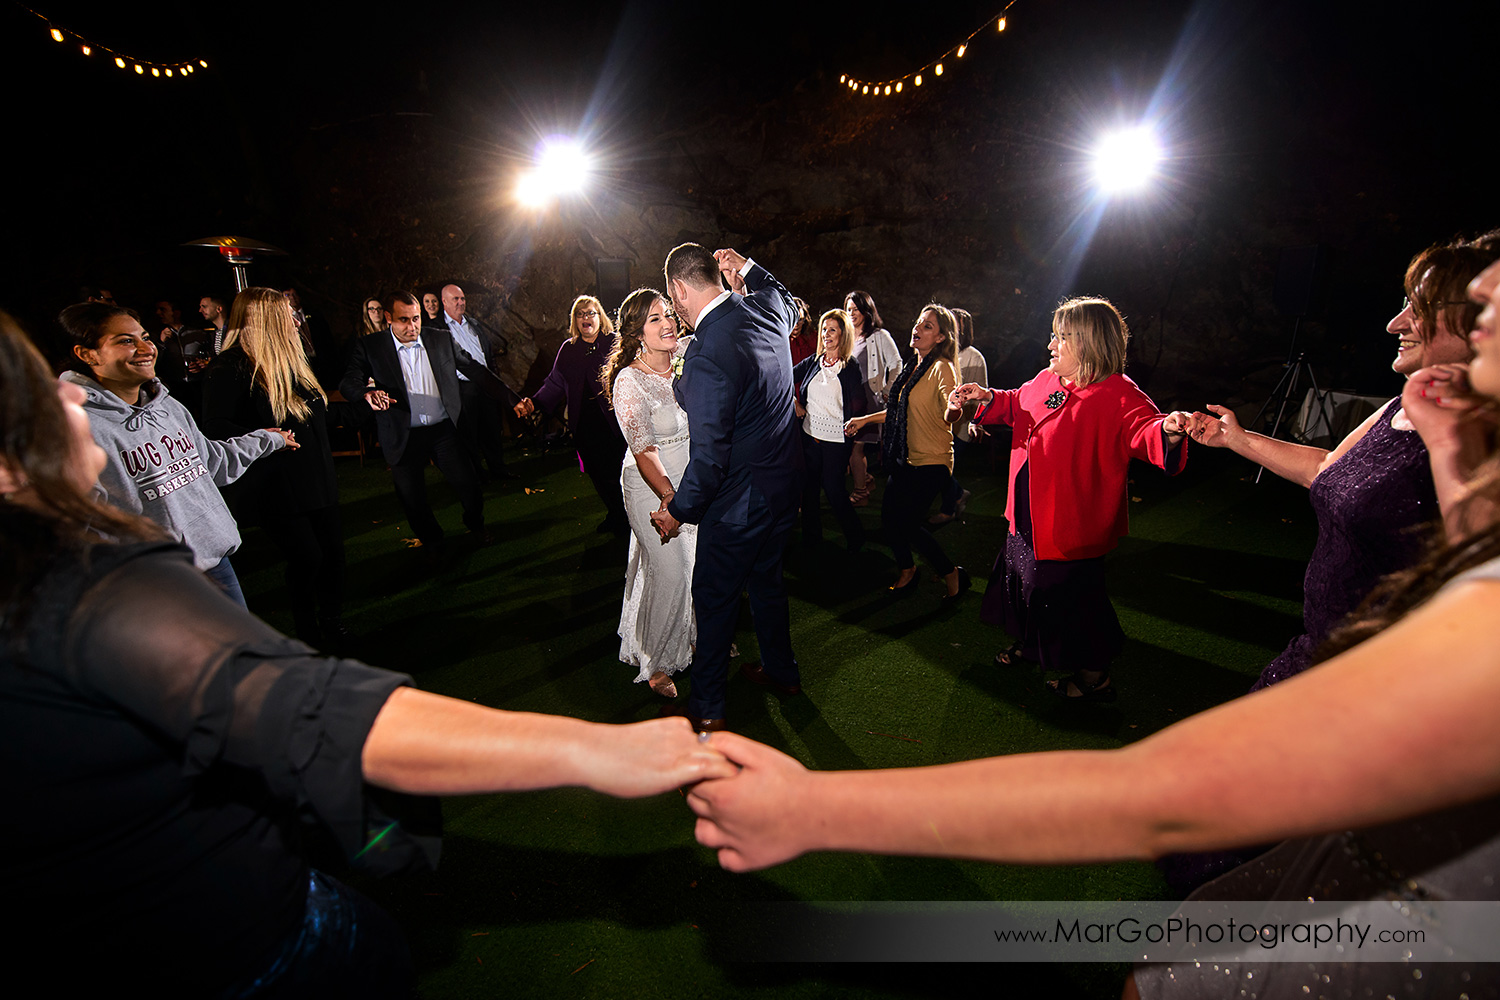 bride and groom dancing in the middle of guests circle during wedding reception at Saratoga Springs Cathedral Grove